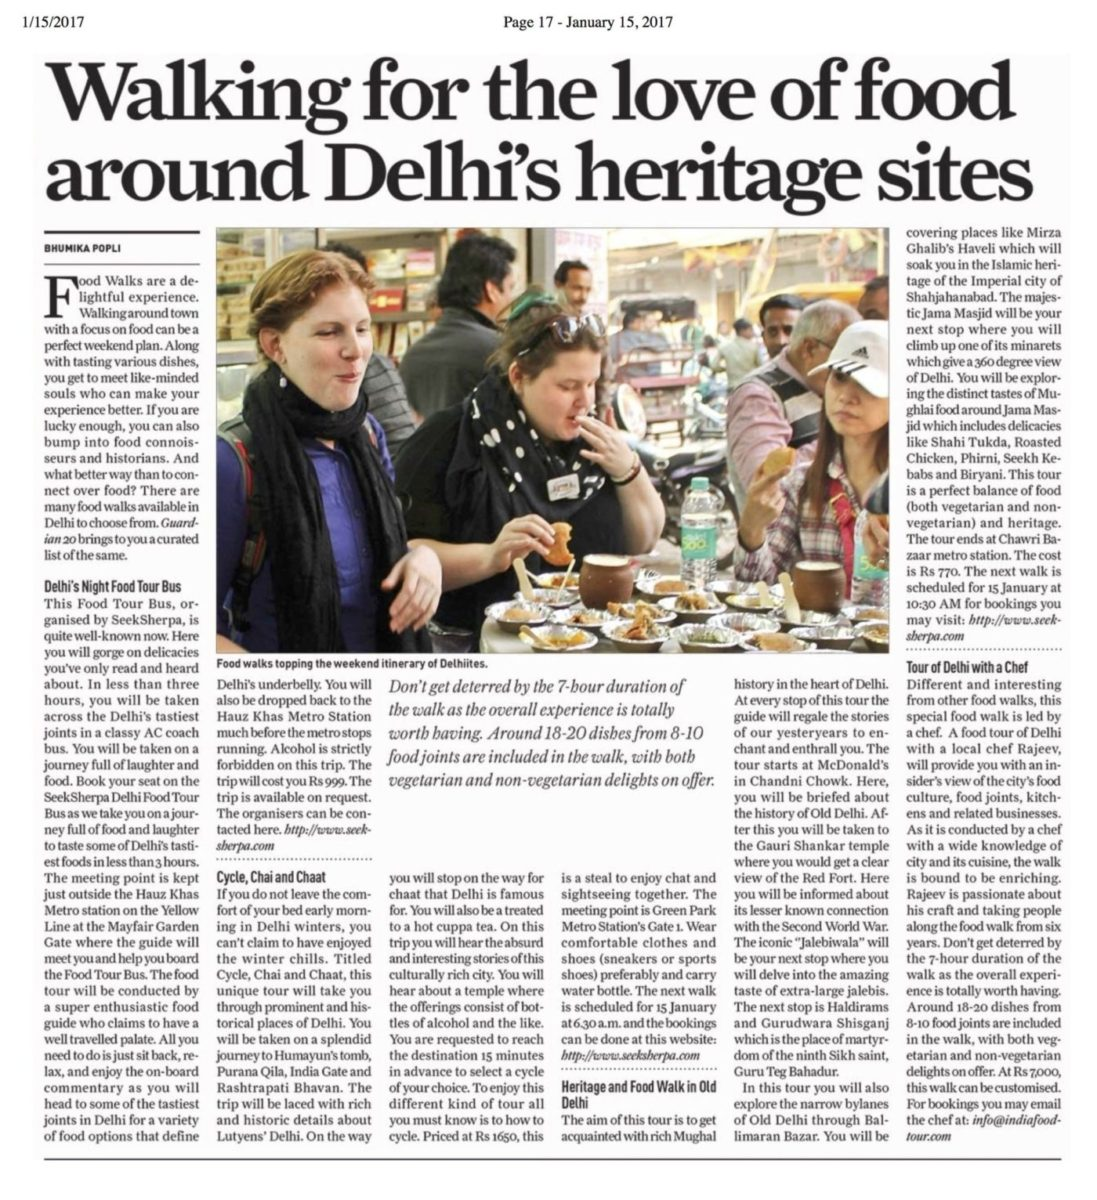 SUNDAY GUARDIAN 15 January 2017 India Food Tour Tour of Delhi with a Chef Different and interesting from other food walks, this special food walk is led by a chef. A food tour of Delhi with a local chef Rajeev, will provide you with an insider's view of the city's food culture, food joints, kitchens and related businesses. As it is conducted by a chef with a wide knowledge of city and its cuisine, the walk is bound to be enriching. Rajeev is passionate about his craft and taking people along the food walk from six years. Don't get deterred by the 7-hour duration of the walk as the overall experience is totally worth having. Around 18-20 dishes from 8-10 food joints are included in the walk, with both vegetarian and non-vegetarian delights on offer. At Rs 7,000, this walk can be customised. For bookings you may email the chef at: info@indiafoodtour.com